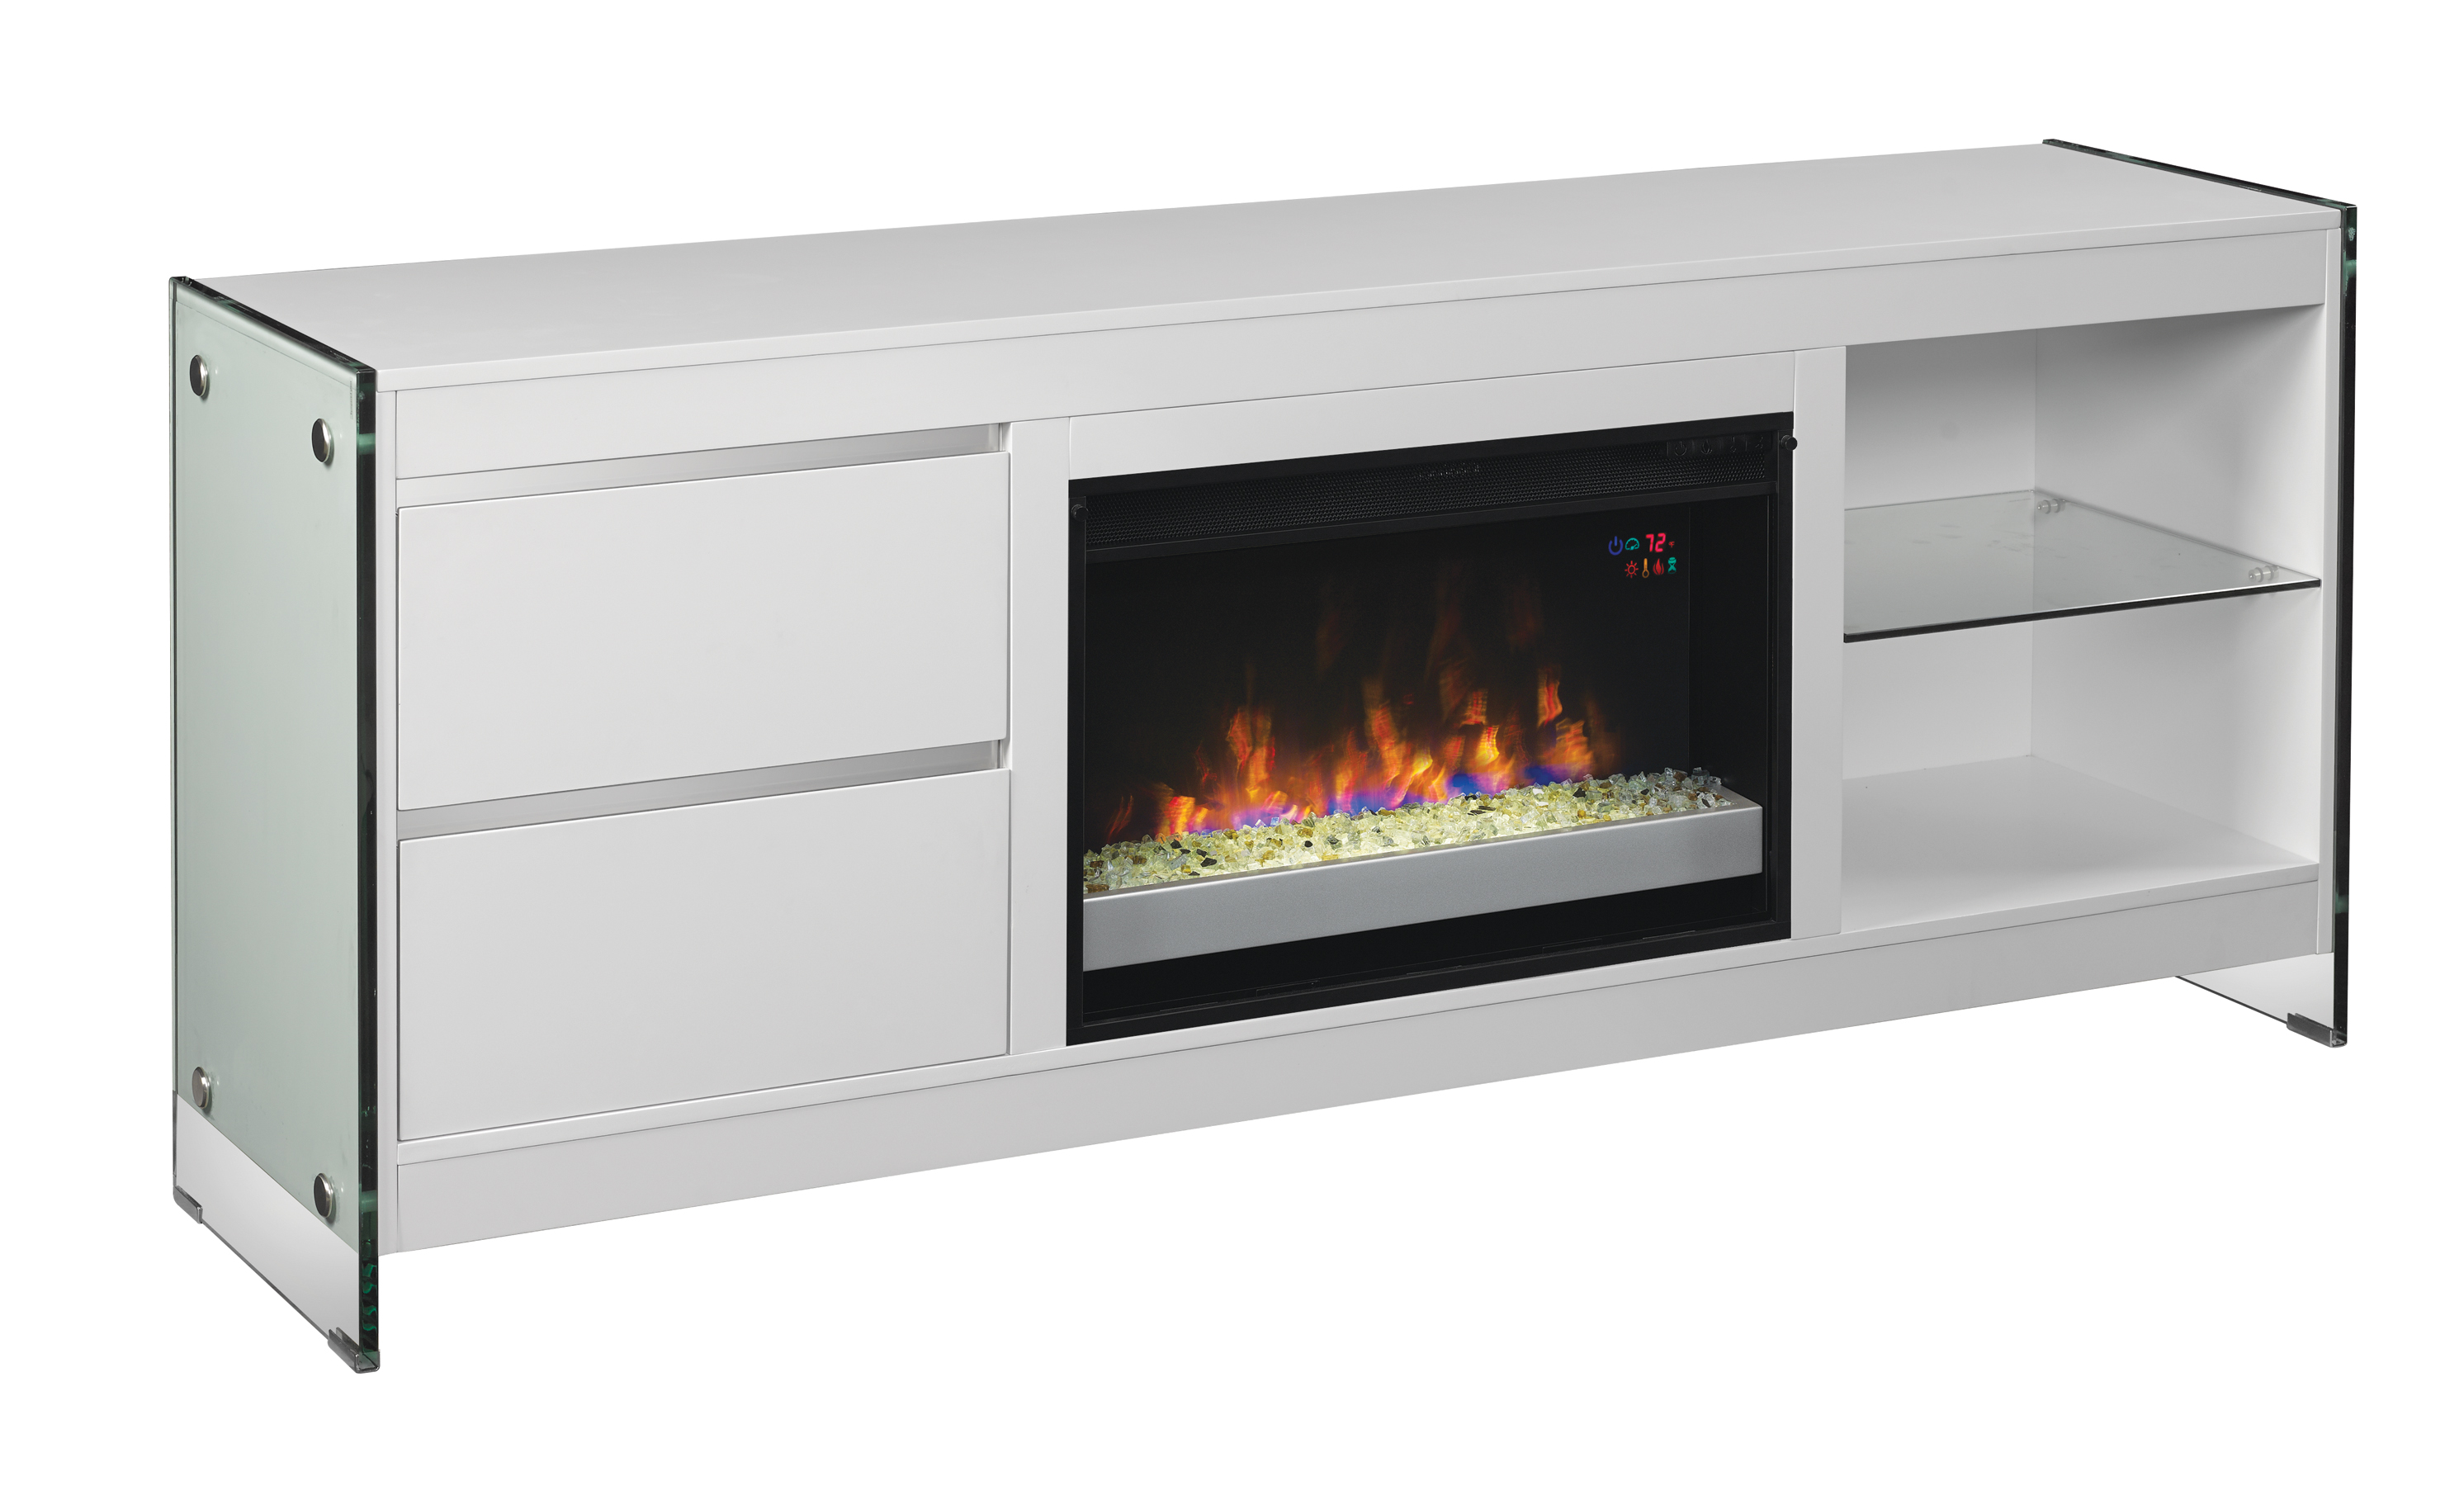 dimplex fireplace installation instructions